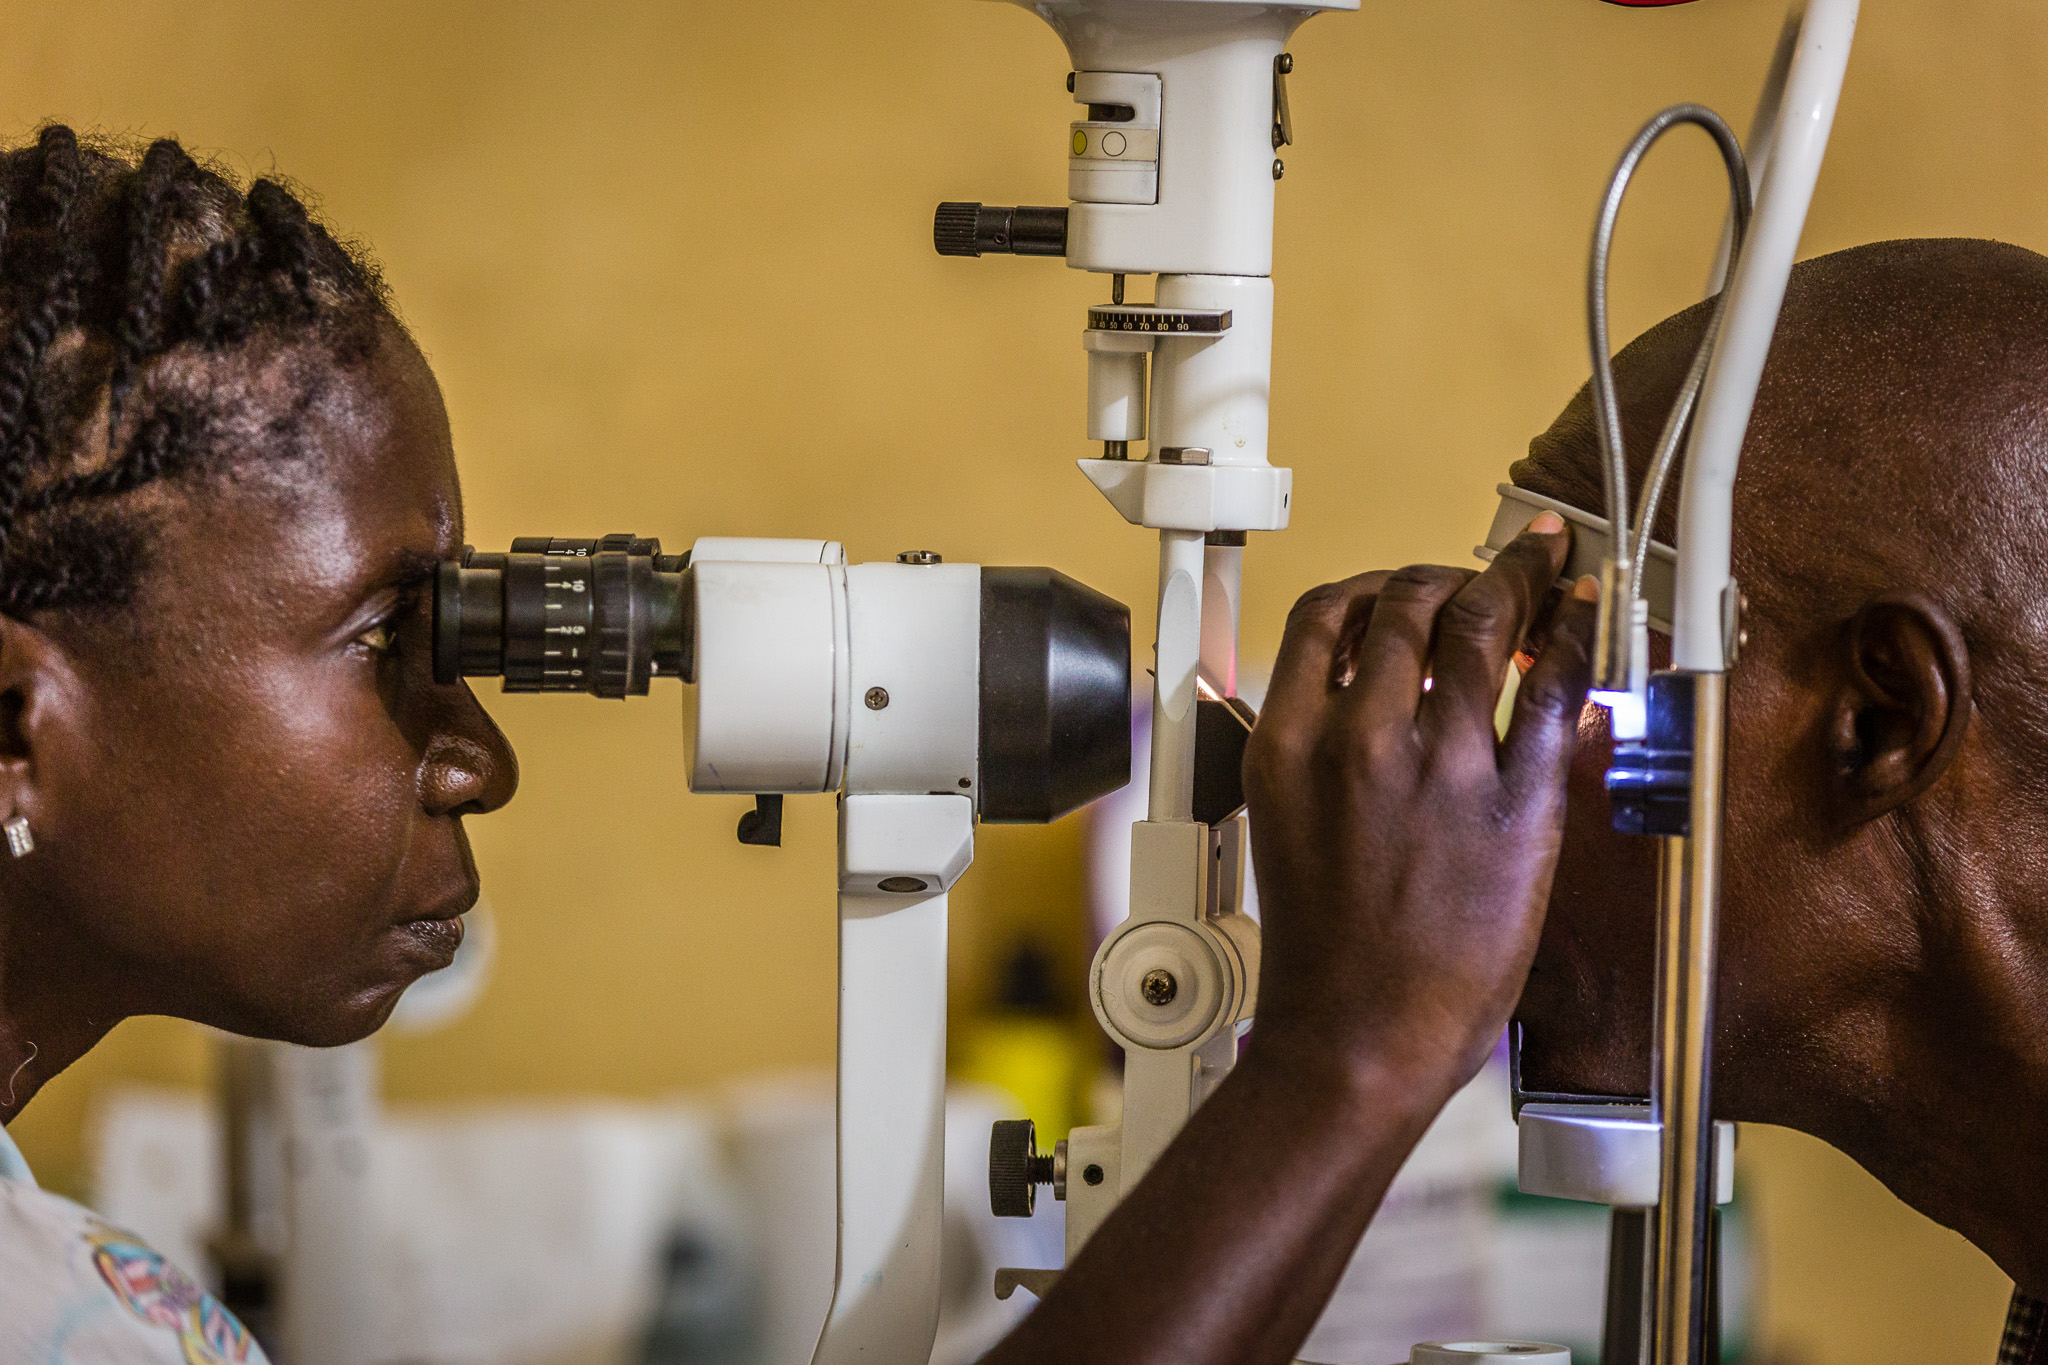 Slit lamp examination, Monrovia, Liberia  submitted by  Terry Cooper  for  #StrongerTogether  Photo Competition